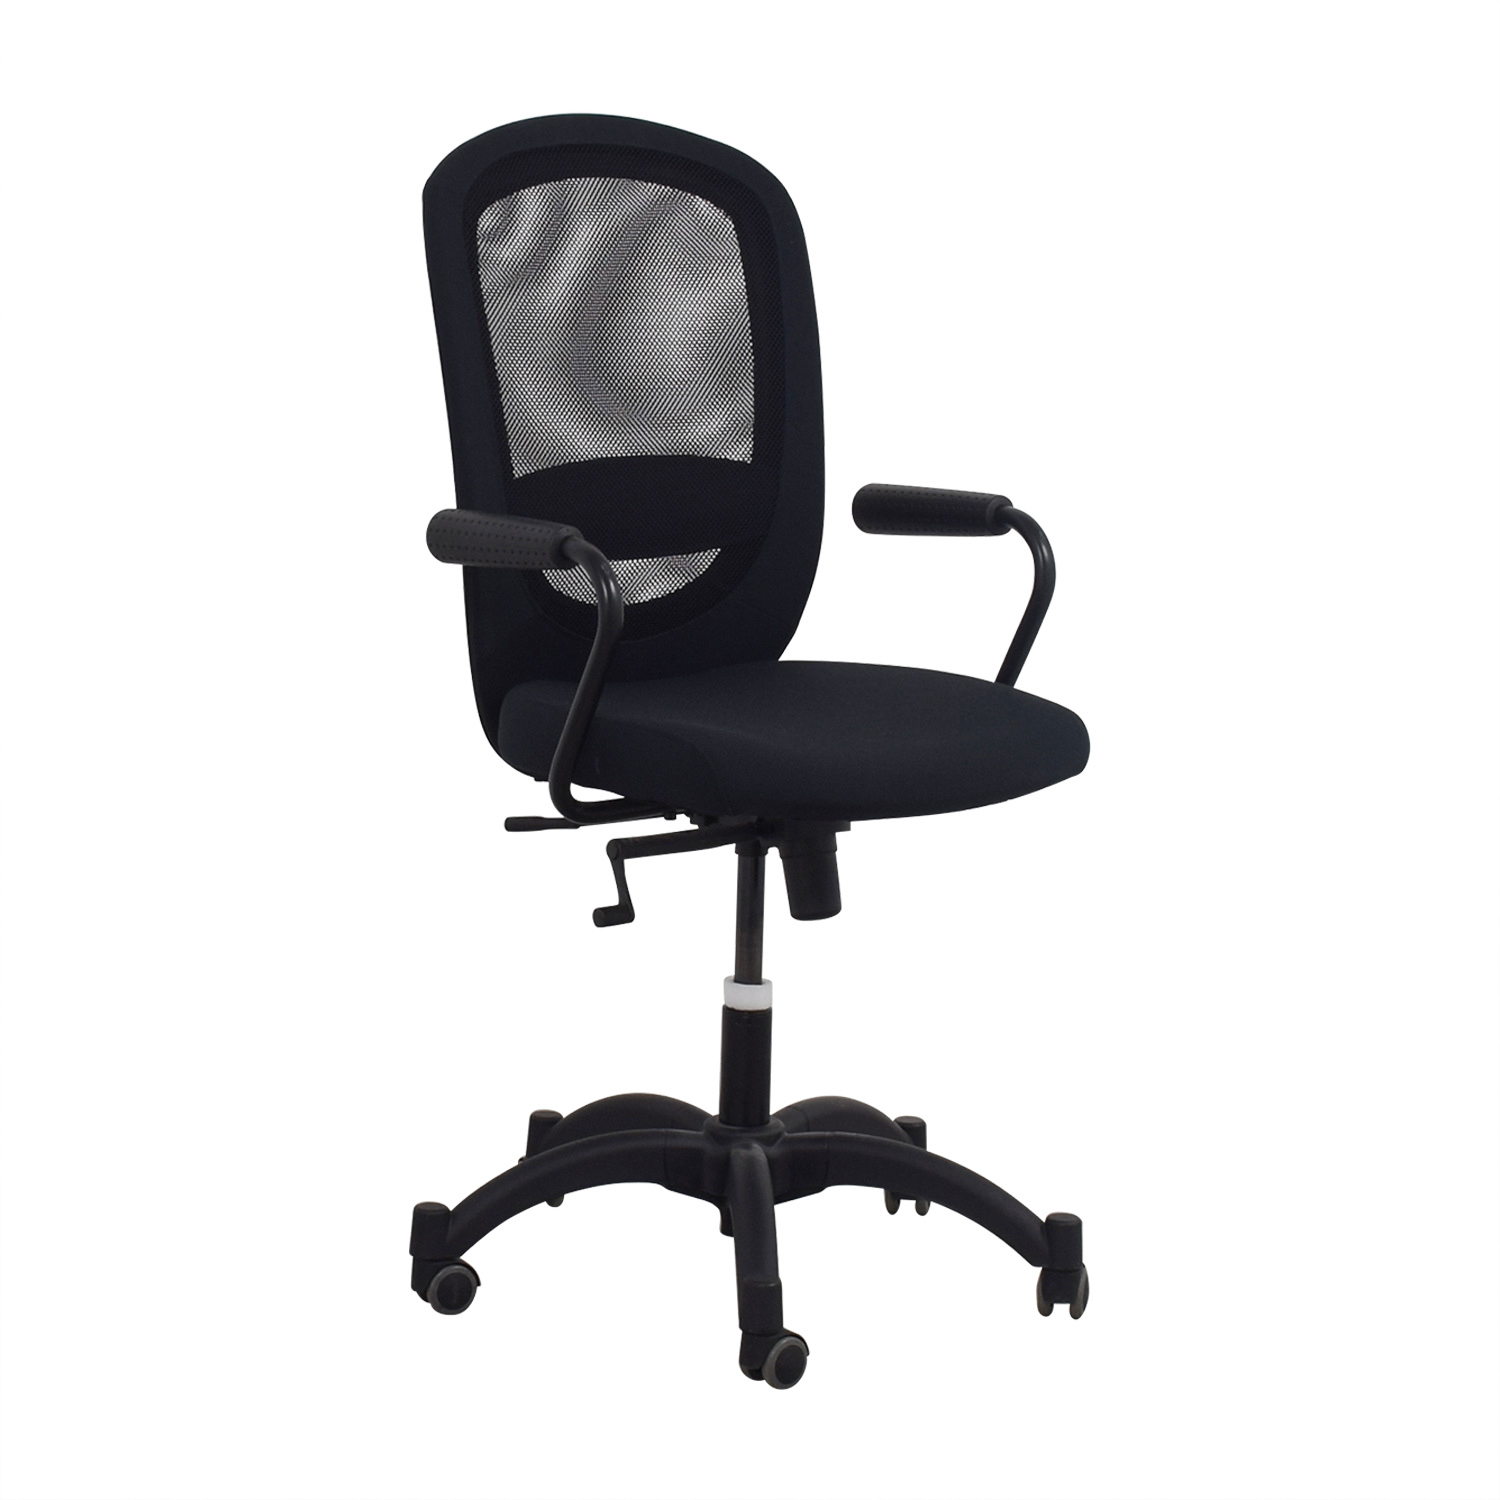 55 off ikea ikea vilgot office chair chairs